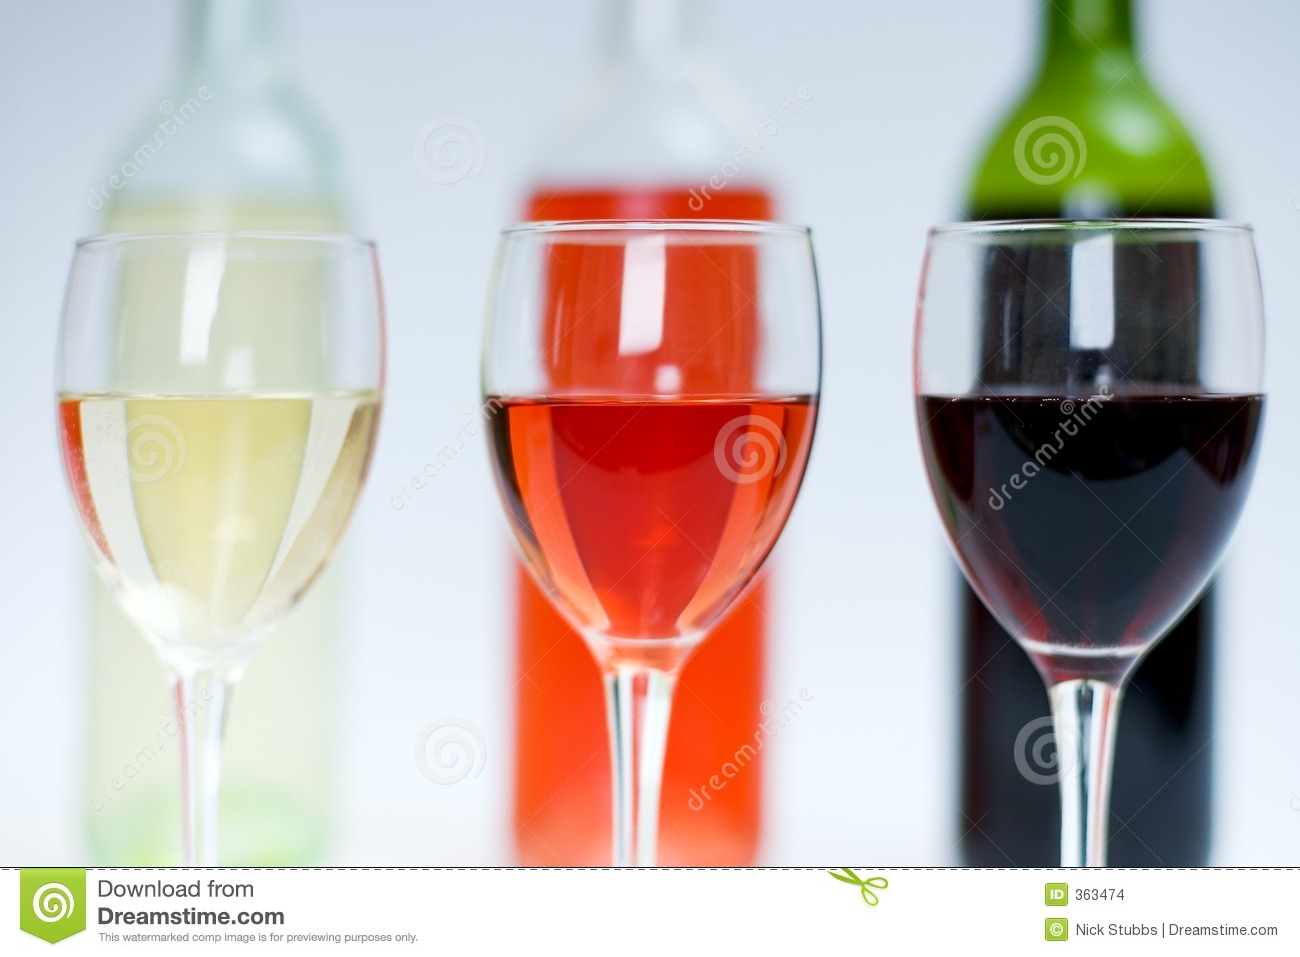 Red, white and rose wine in glasses with bottles behind